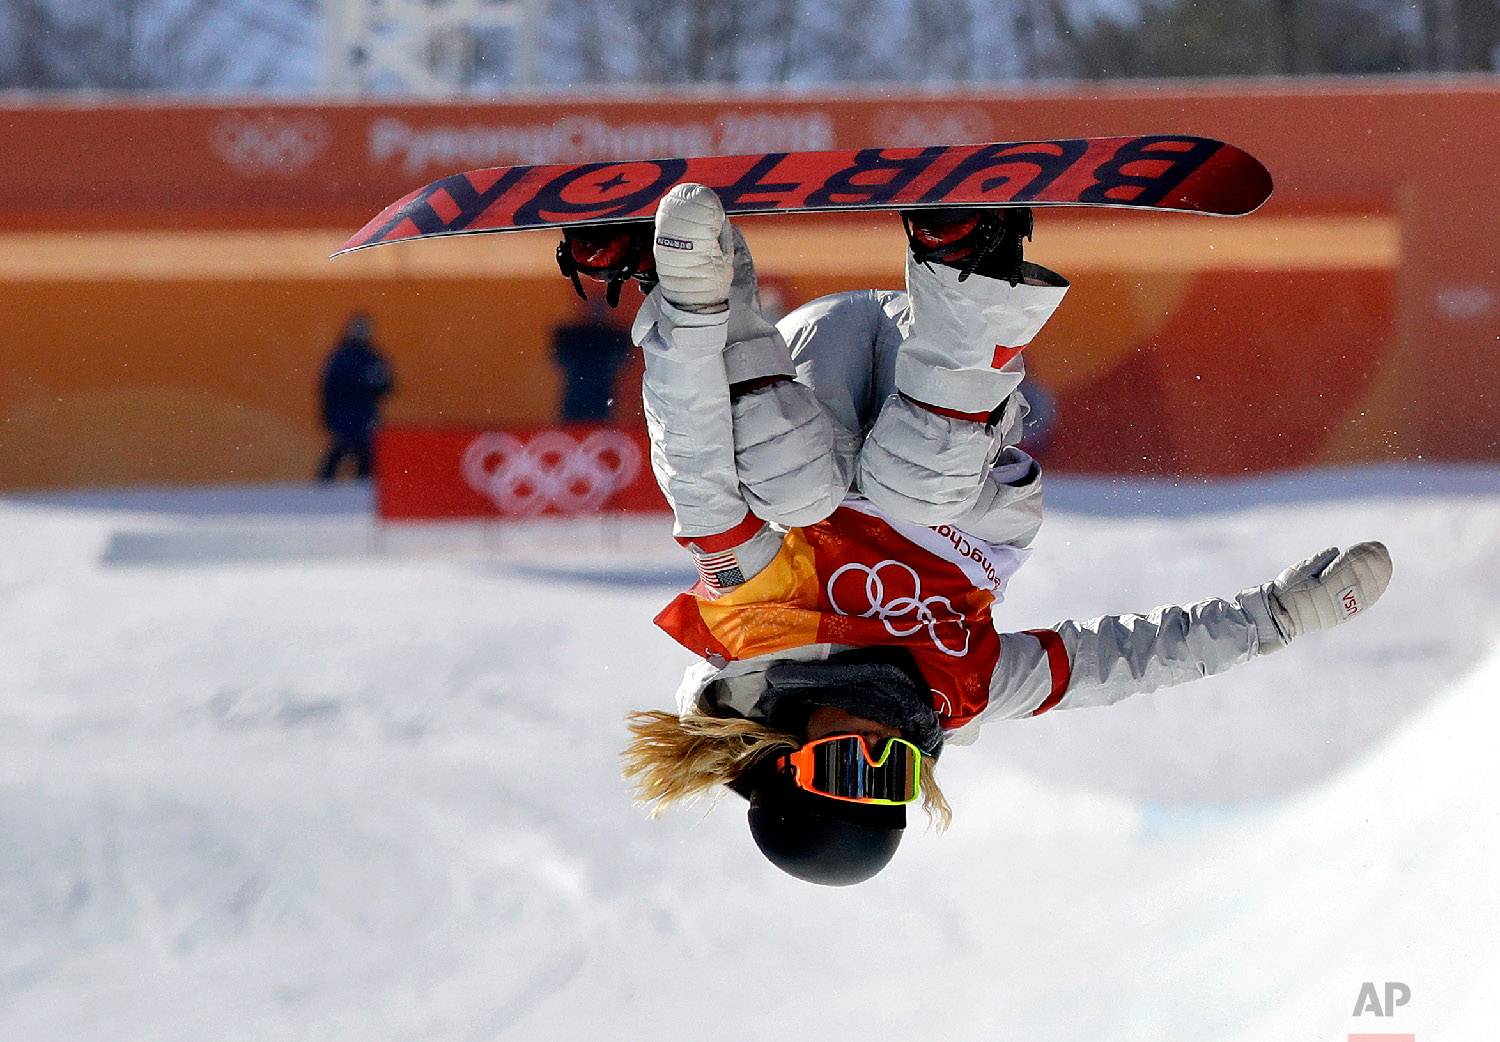 ChloeKim, of the United States, jumps during the women's halfpipe finals at Phoenix Snow Park at the 2018 Winter Olympics in Pyeongchang, South Korea, Tuesday, Feb. 13, 2018. (AP Photo/Lee Jin-man)